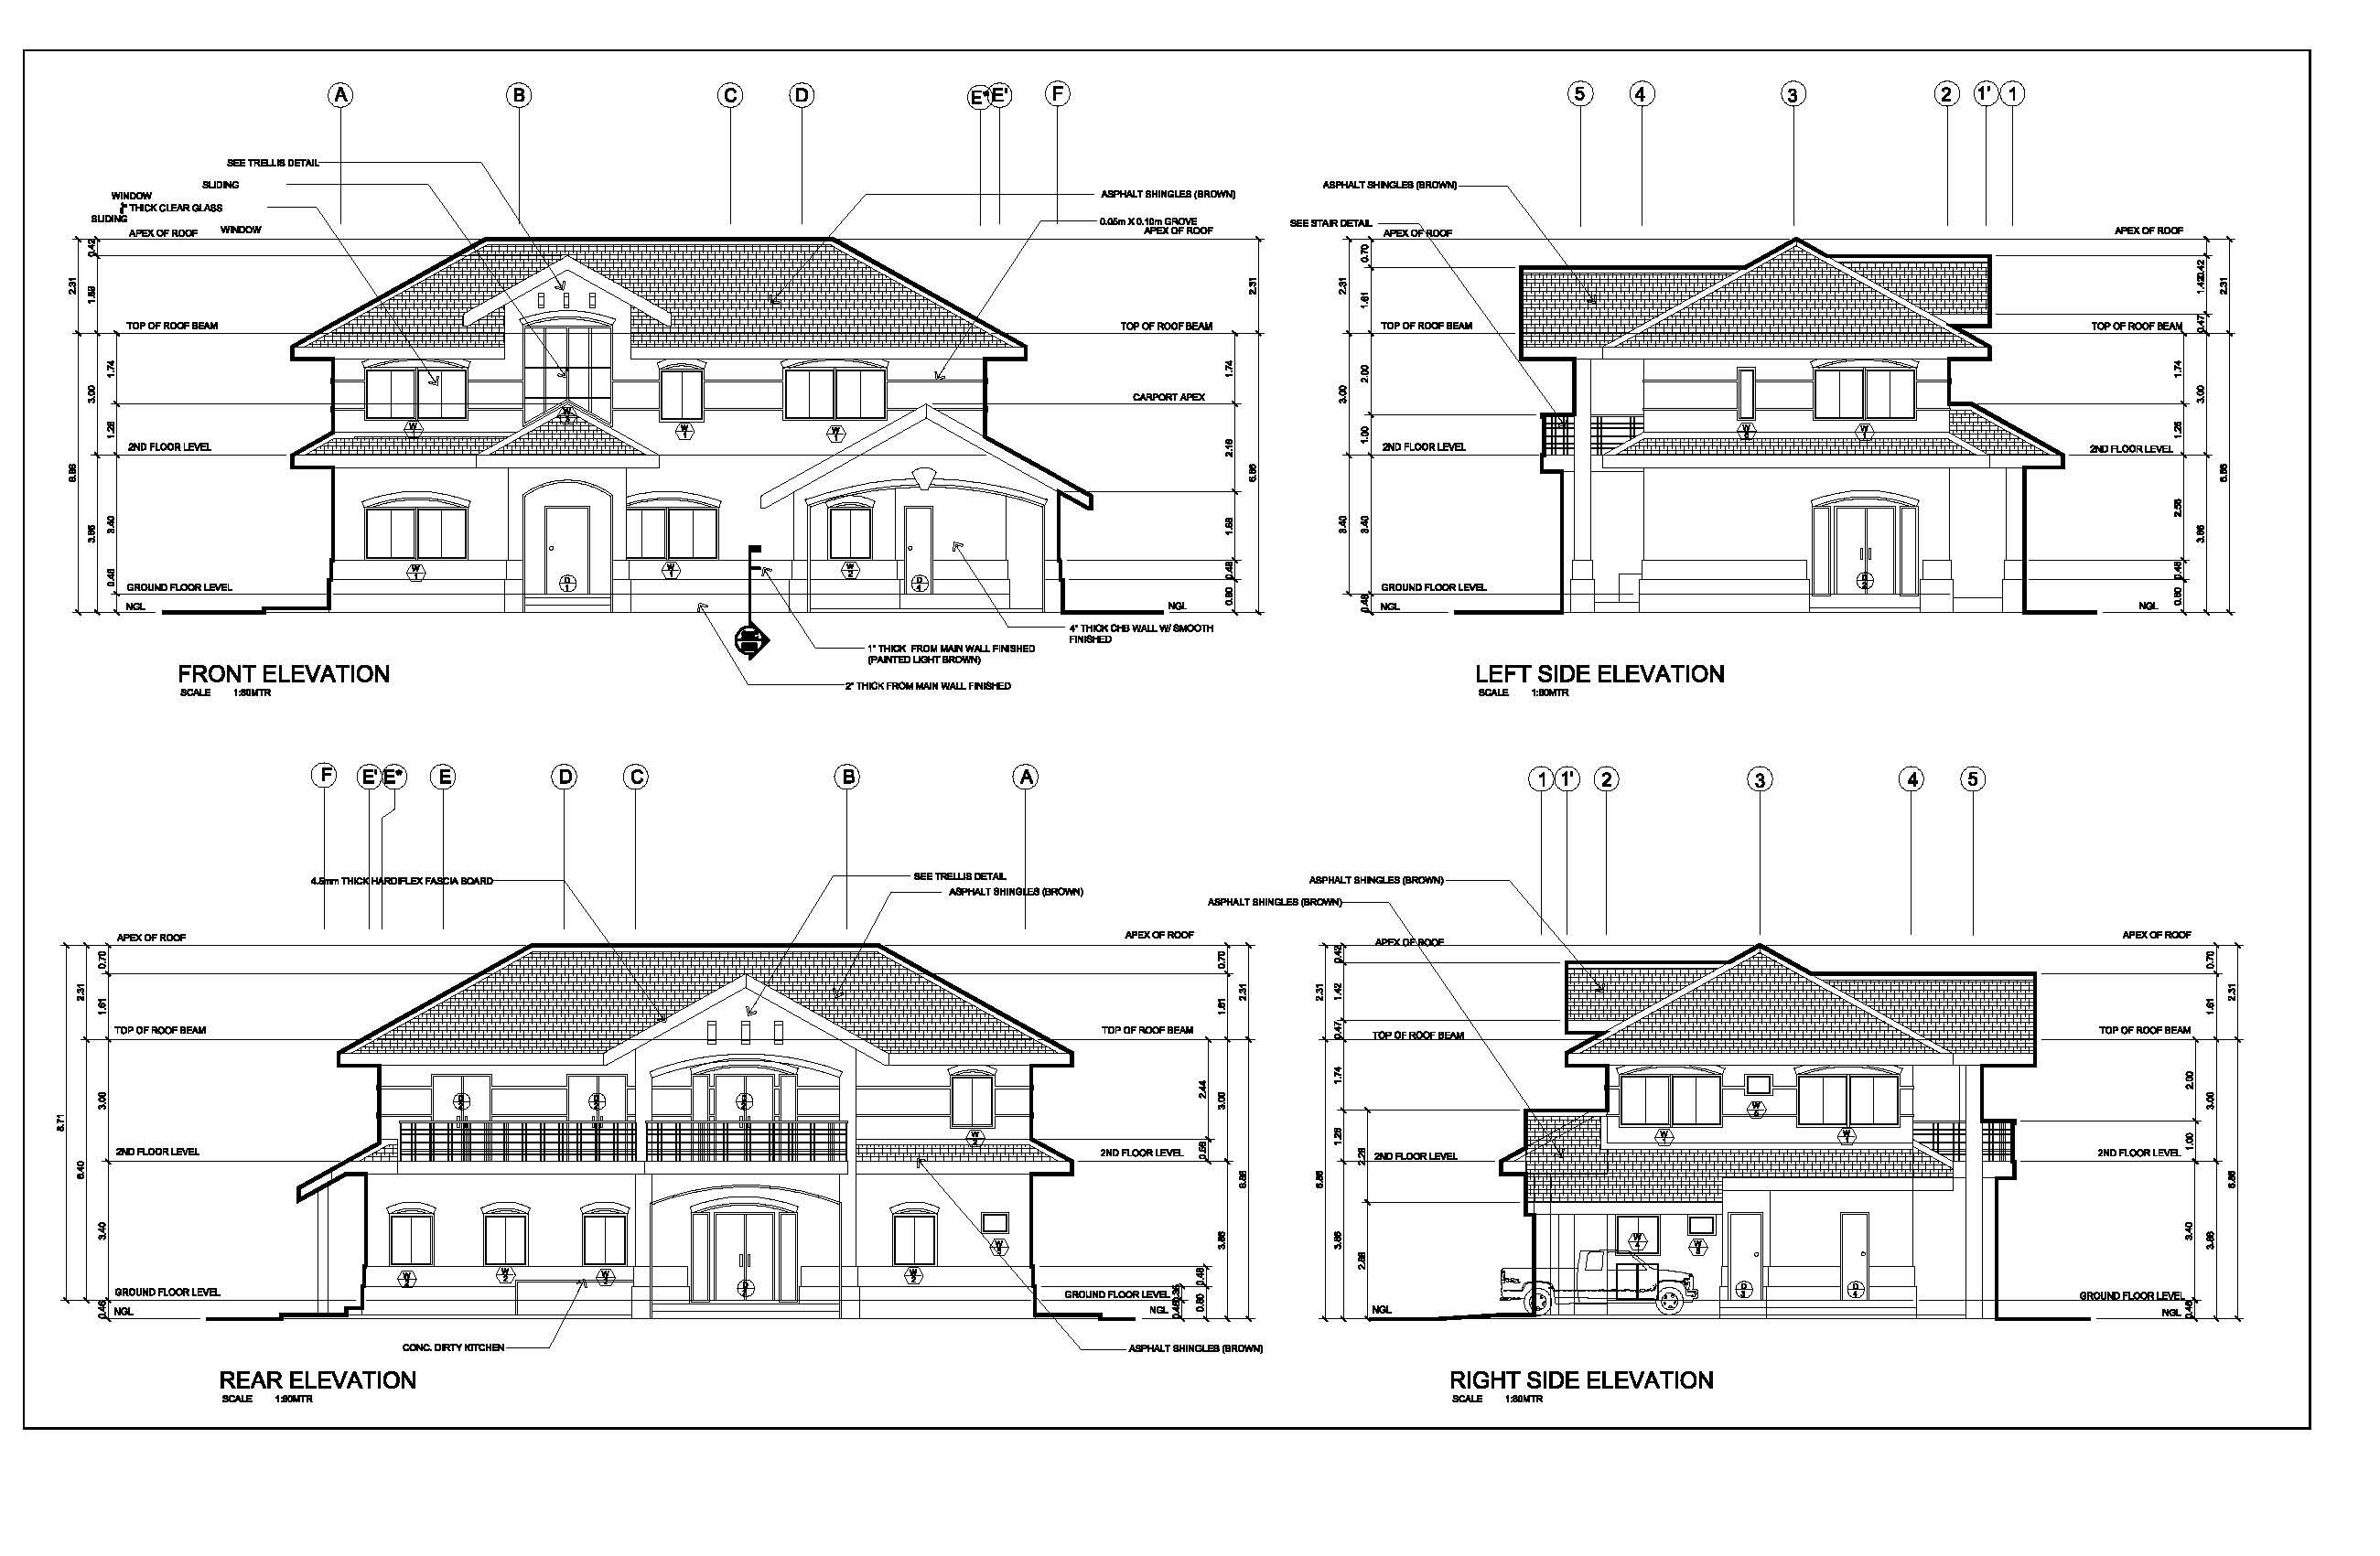 Engineering Drawing Services Steel Building Constructions Architectural Floor Plans Structural Drawing Architecture